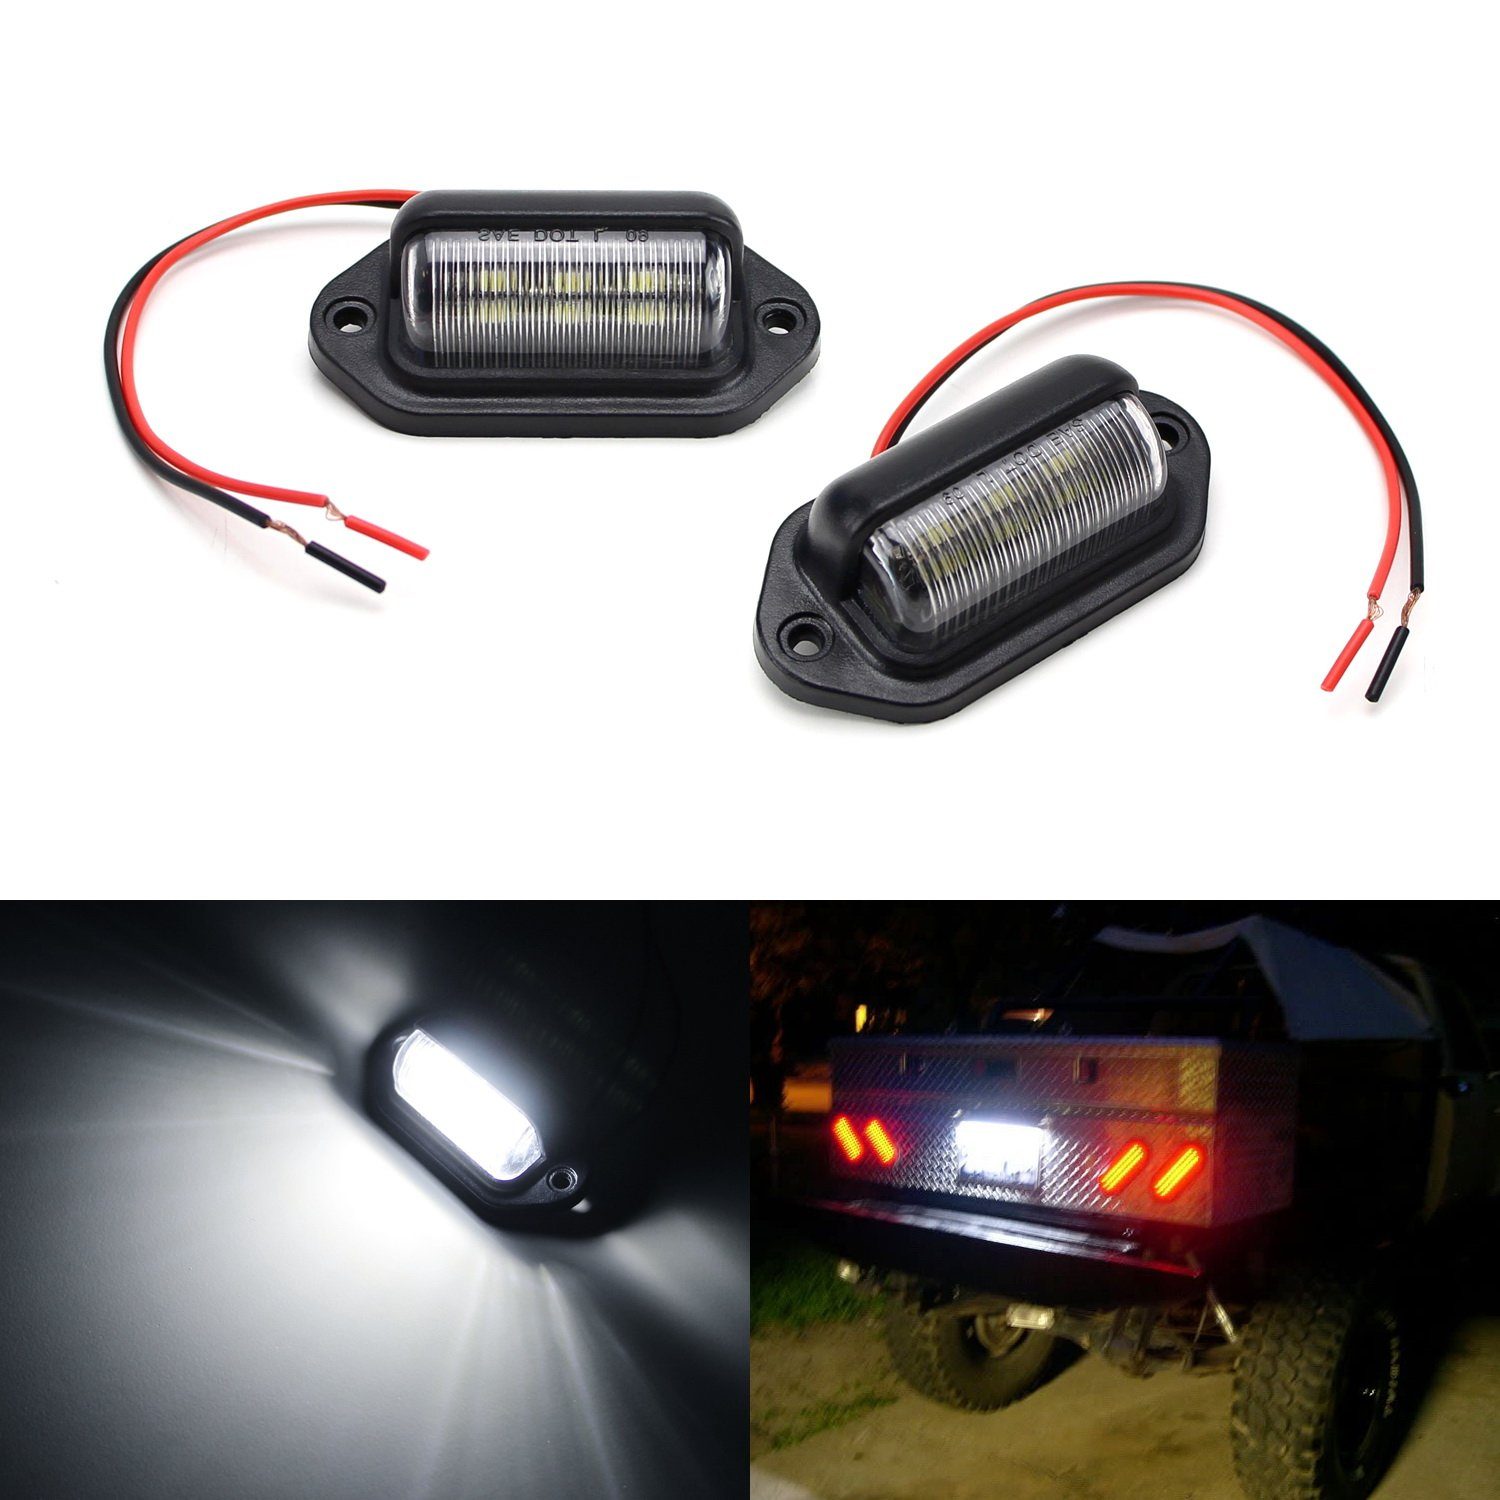 2 Dome//Cargo Lights or Under Hood Lights etc iJDMTOY Auto Accessories Universal Fit 12V DC Illumination Lamp 12V Add-On 6-SMD LED Lamps For Truck SUV Trailer Van As License Plate Lights Step Courtesy Lights iJDMTOY